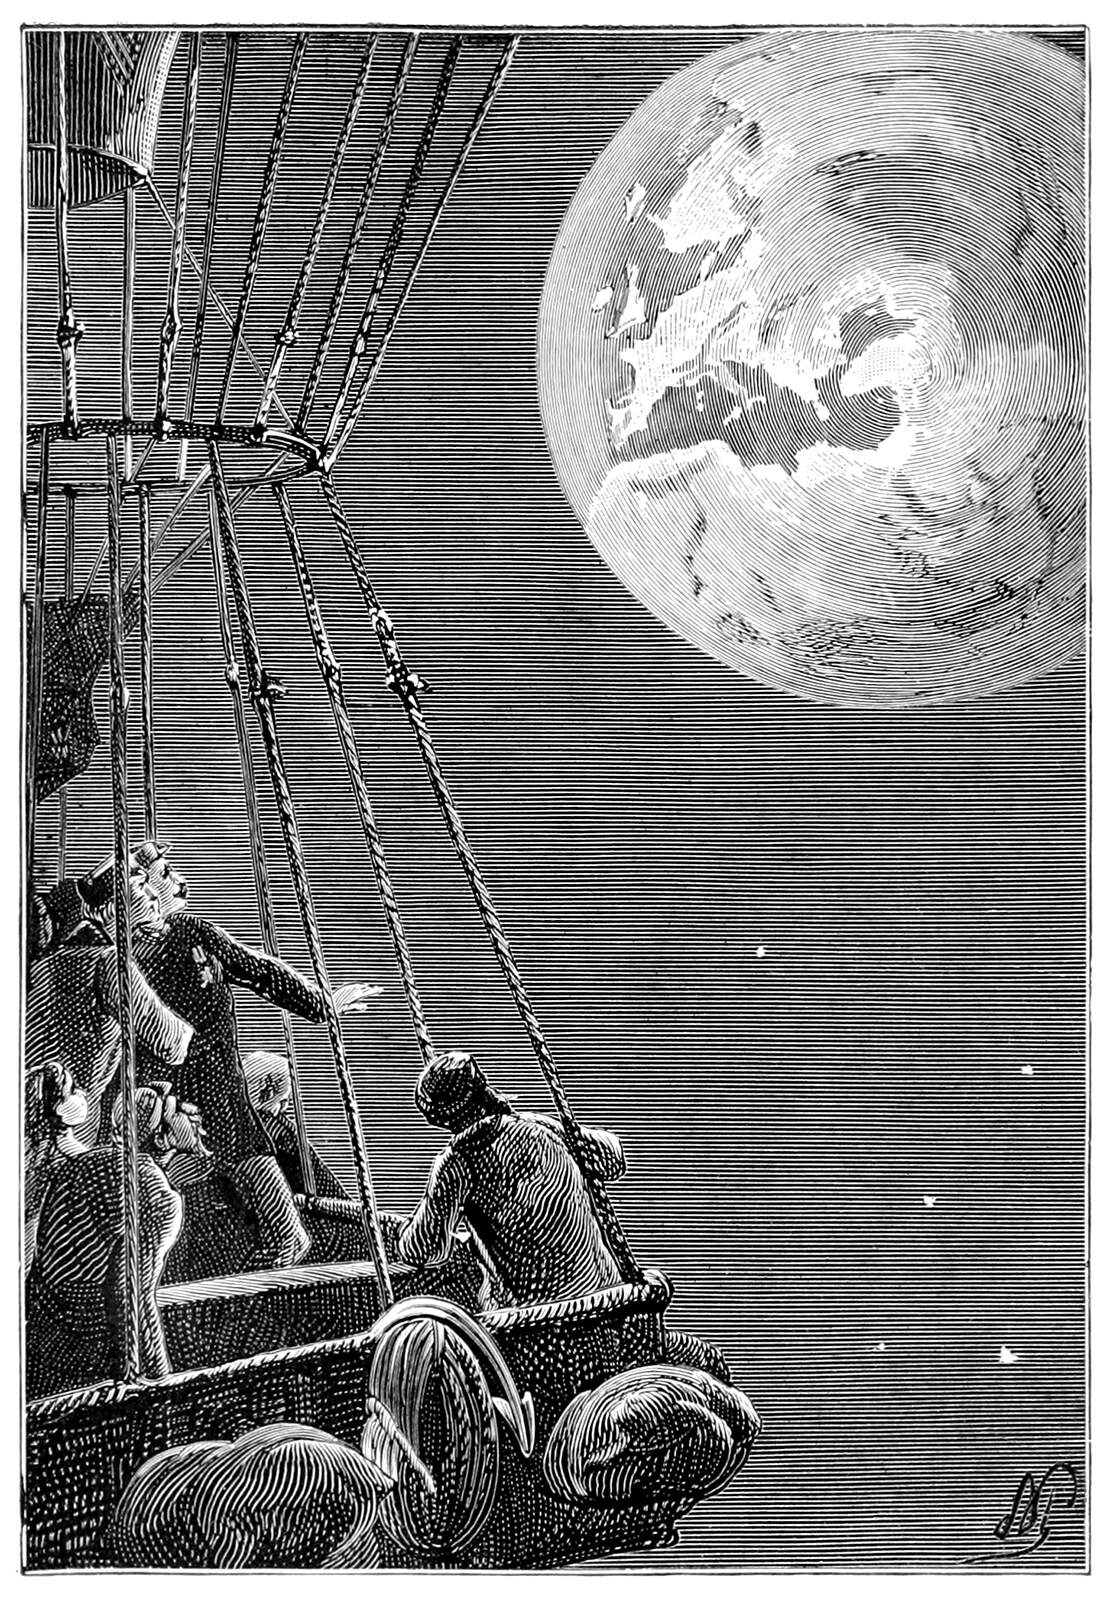 A group of people on a hot air balloon looking back at Earth